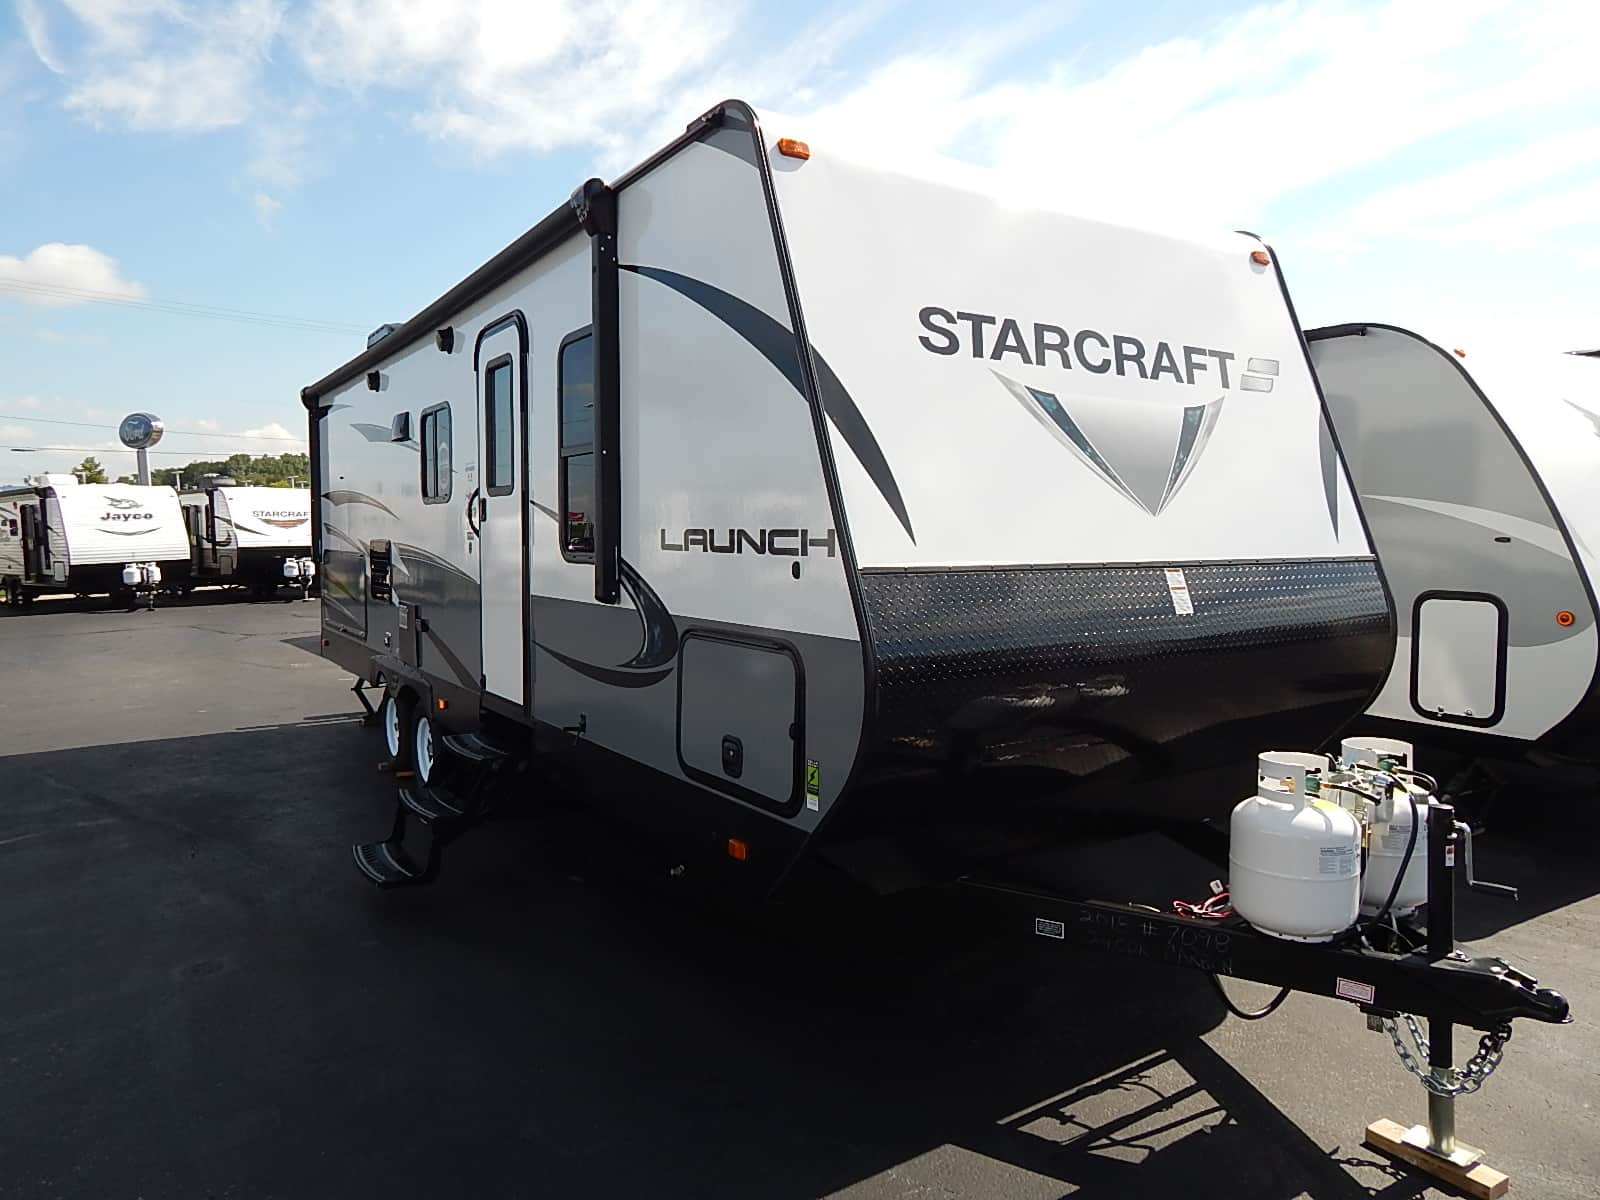 NEW 2018 STARCRAFT LAUNCH OUTFITTER 24ODK - Rick's RV Center